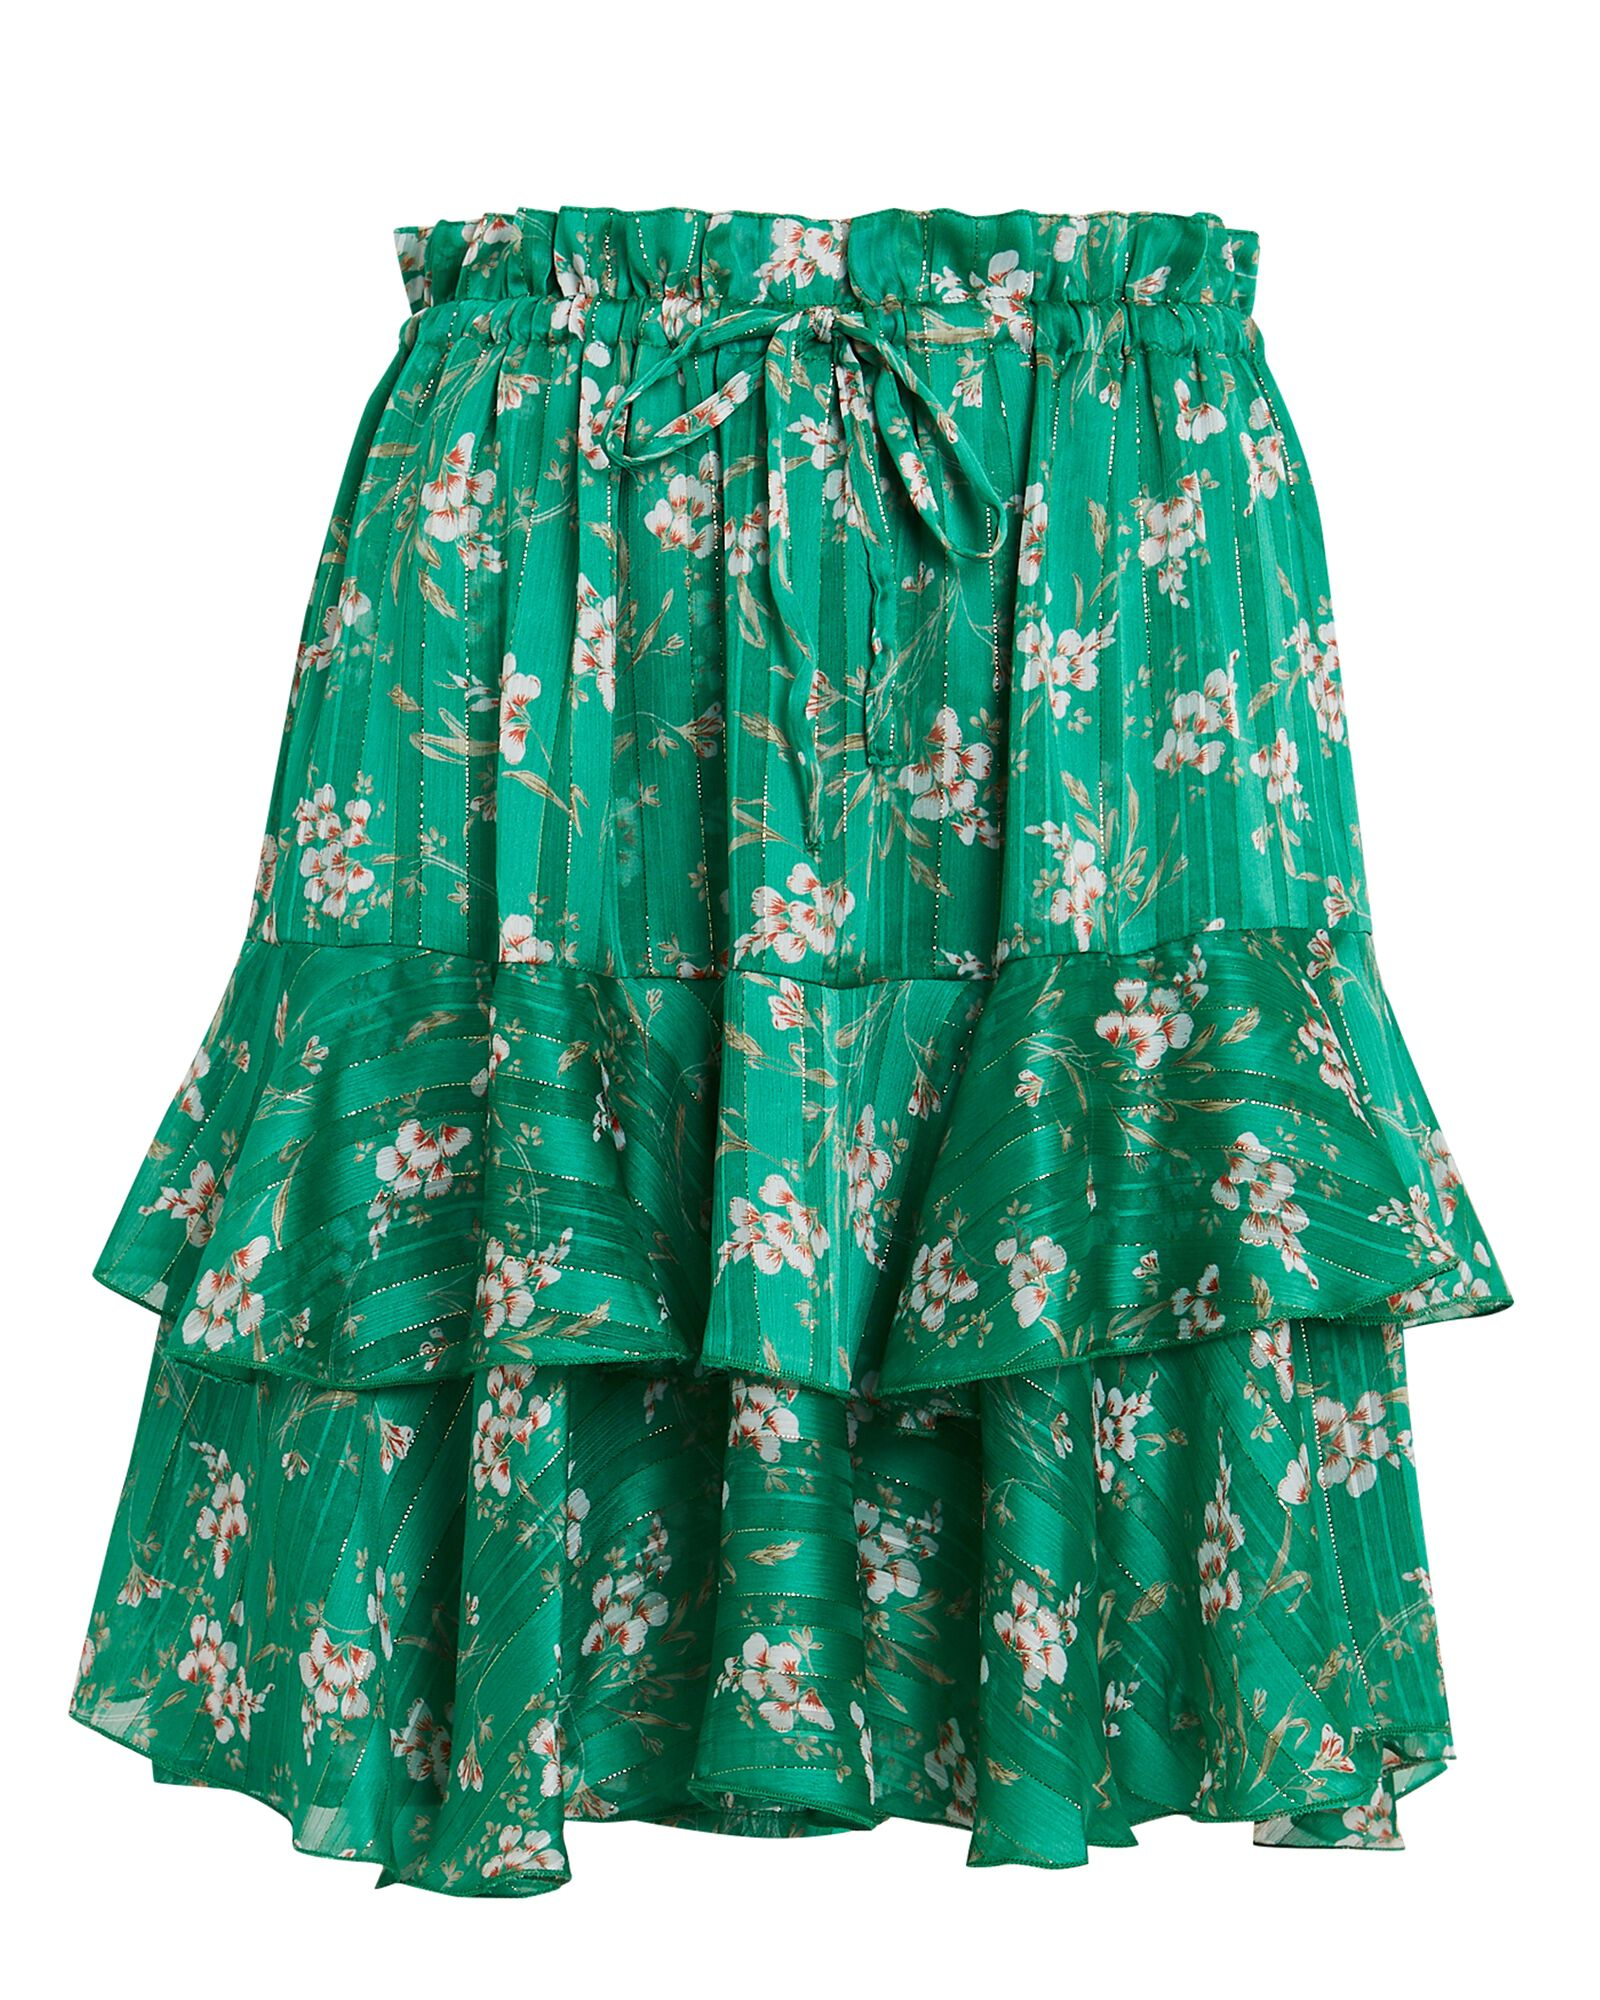 Meredith Ruffled Mini Skirt, GREEN, hi-res